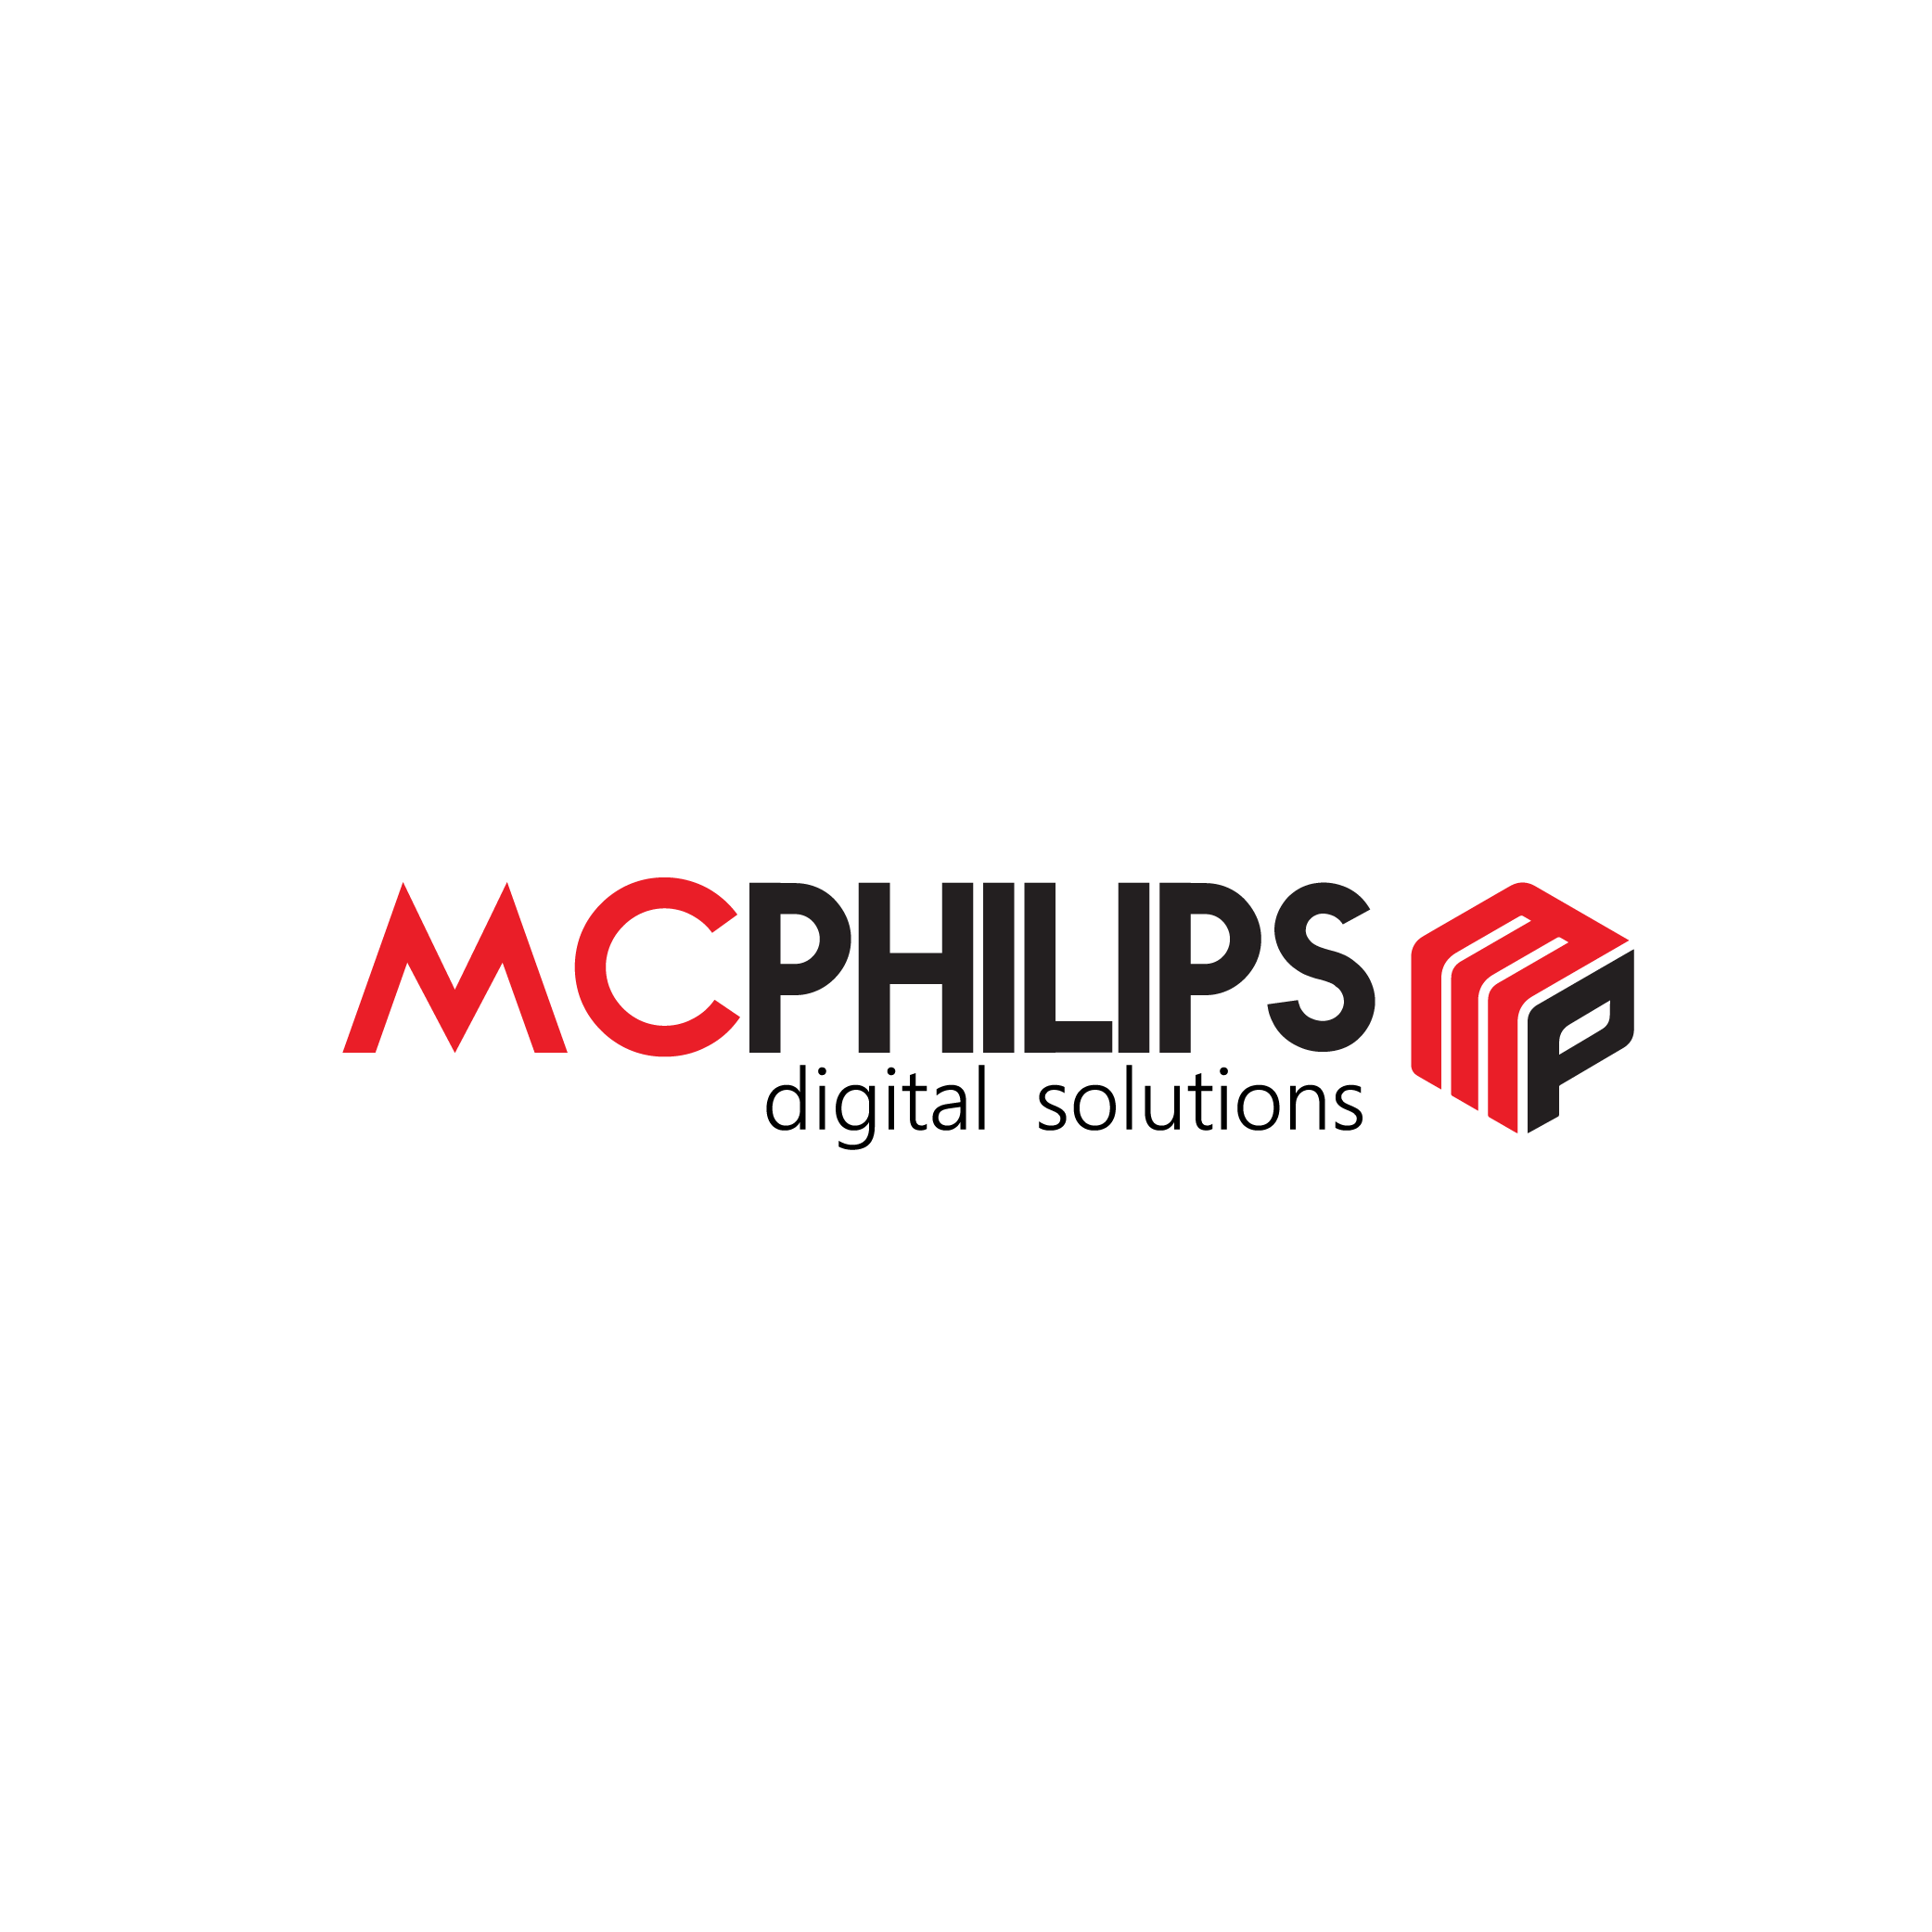 McPhilips Digital